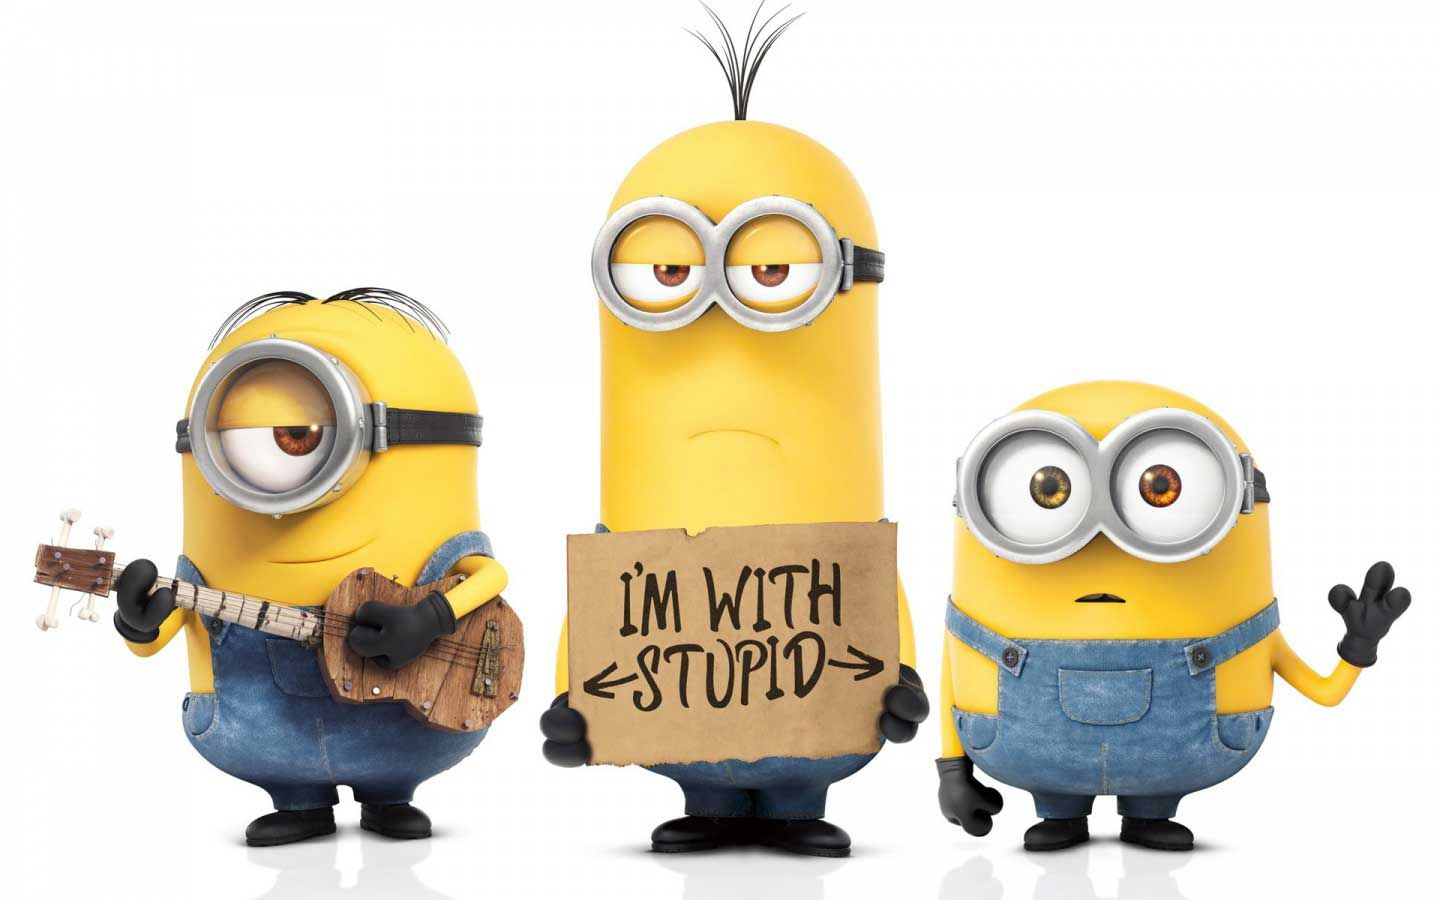 25 Cute Minions Wallpapers Collection In